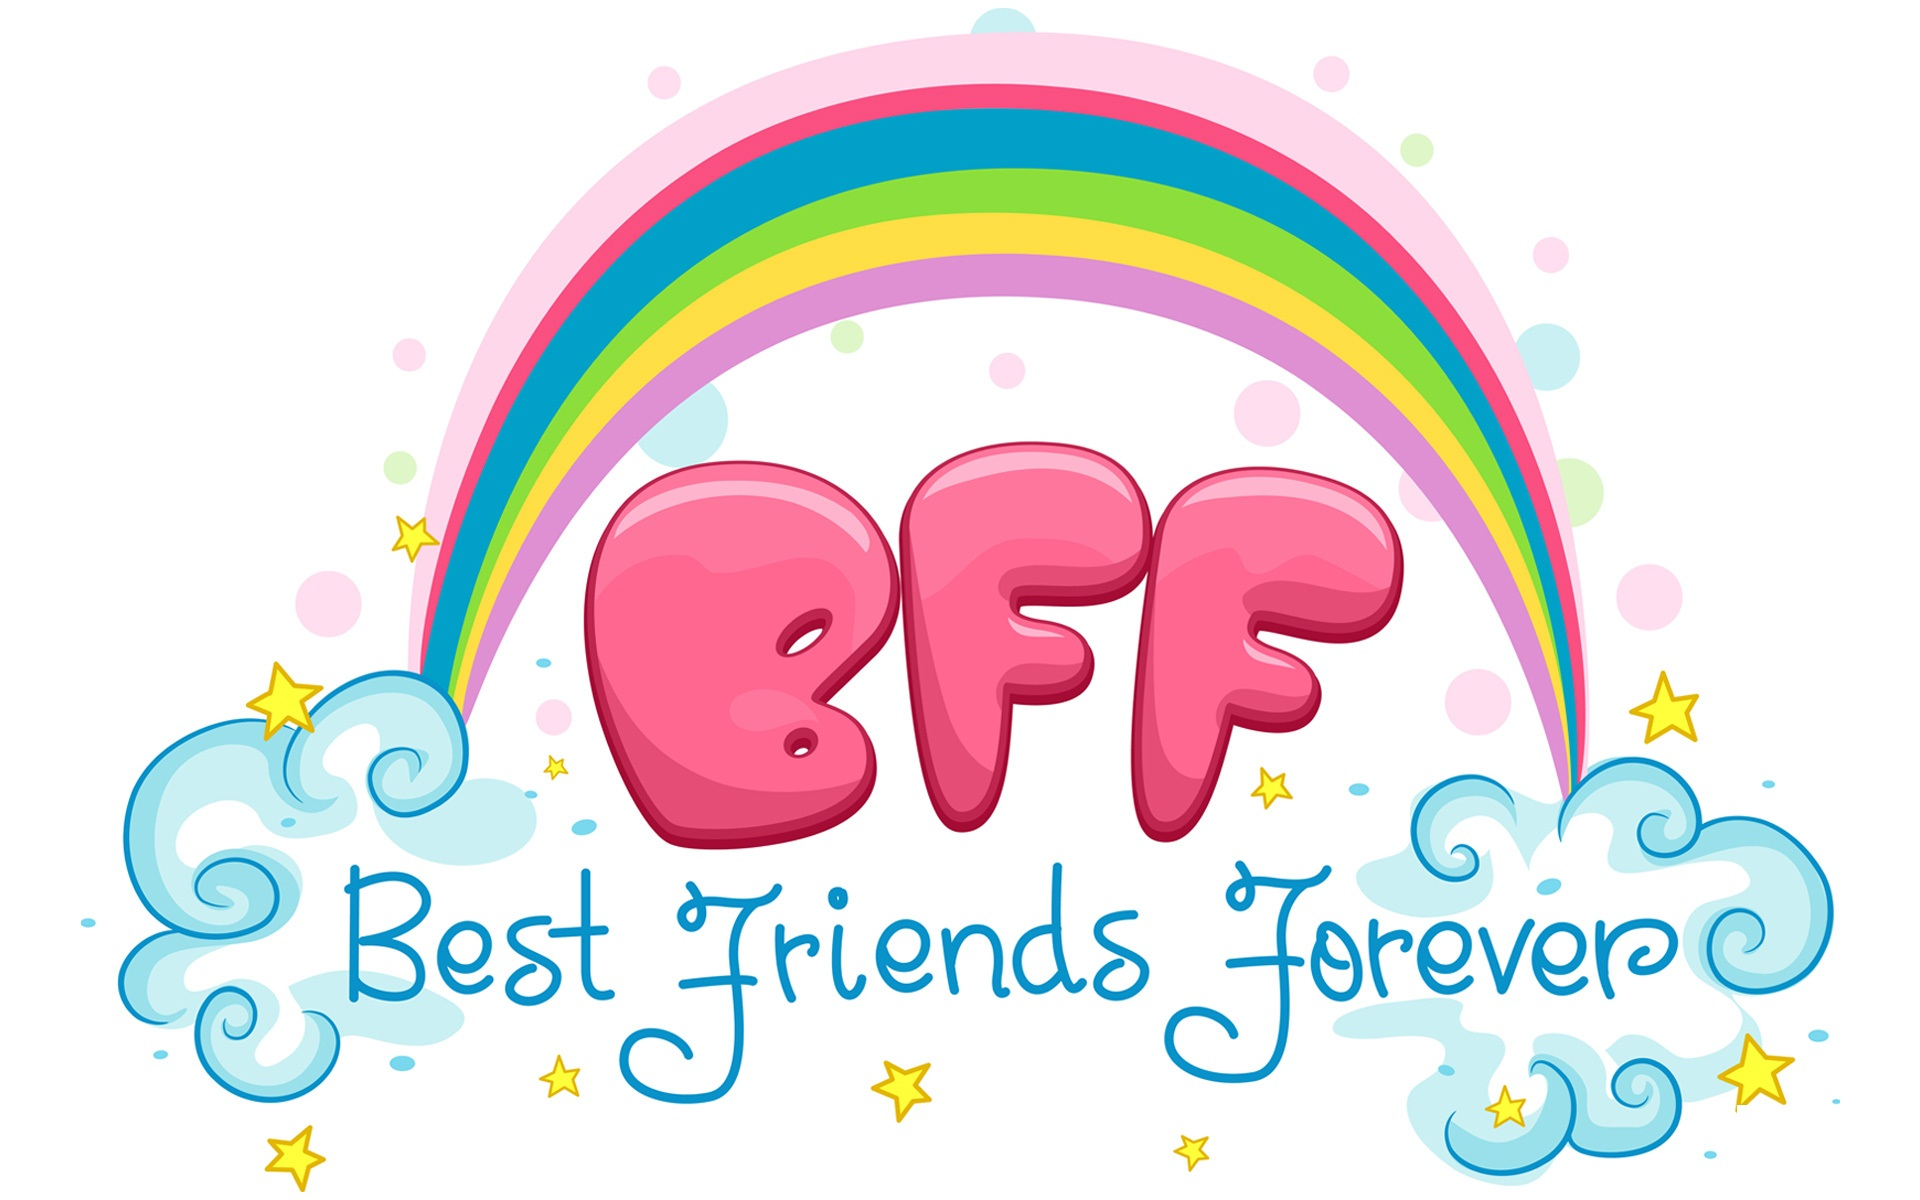 Best Friends Forever   Wallpaper High Definition High Quality 1920x1200